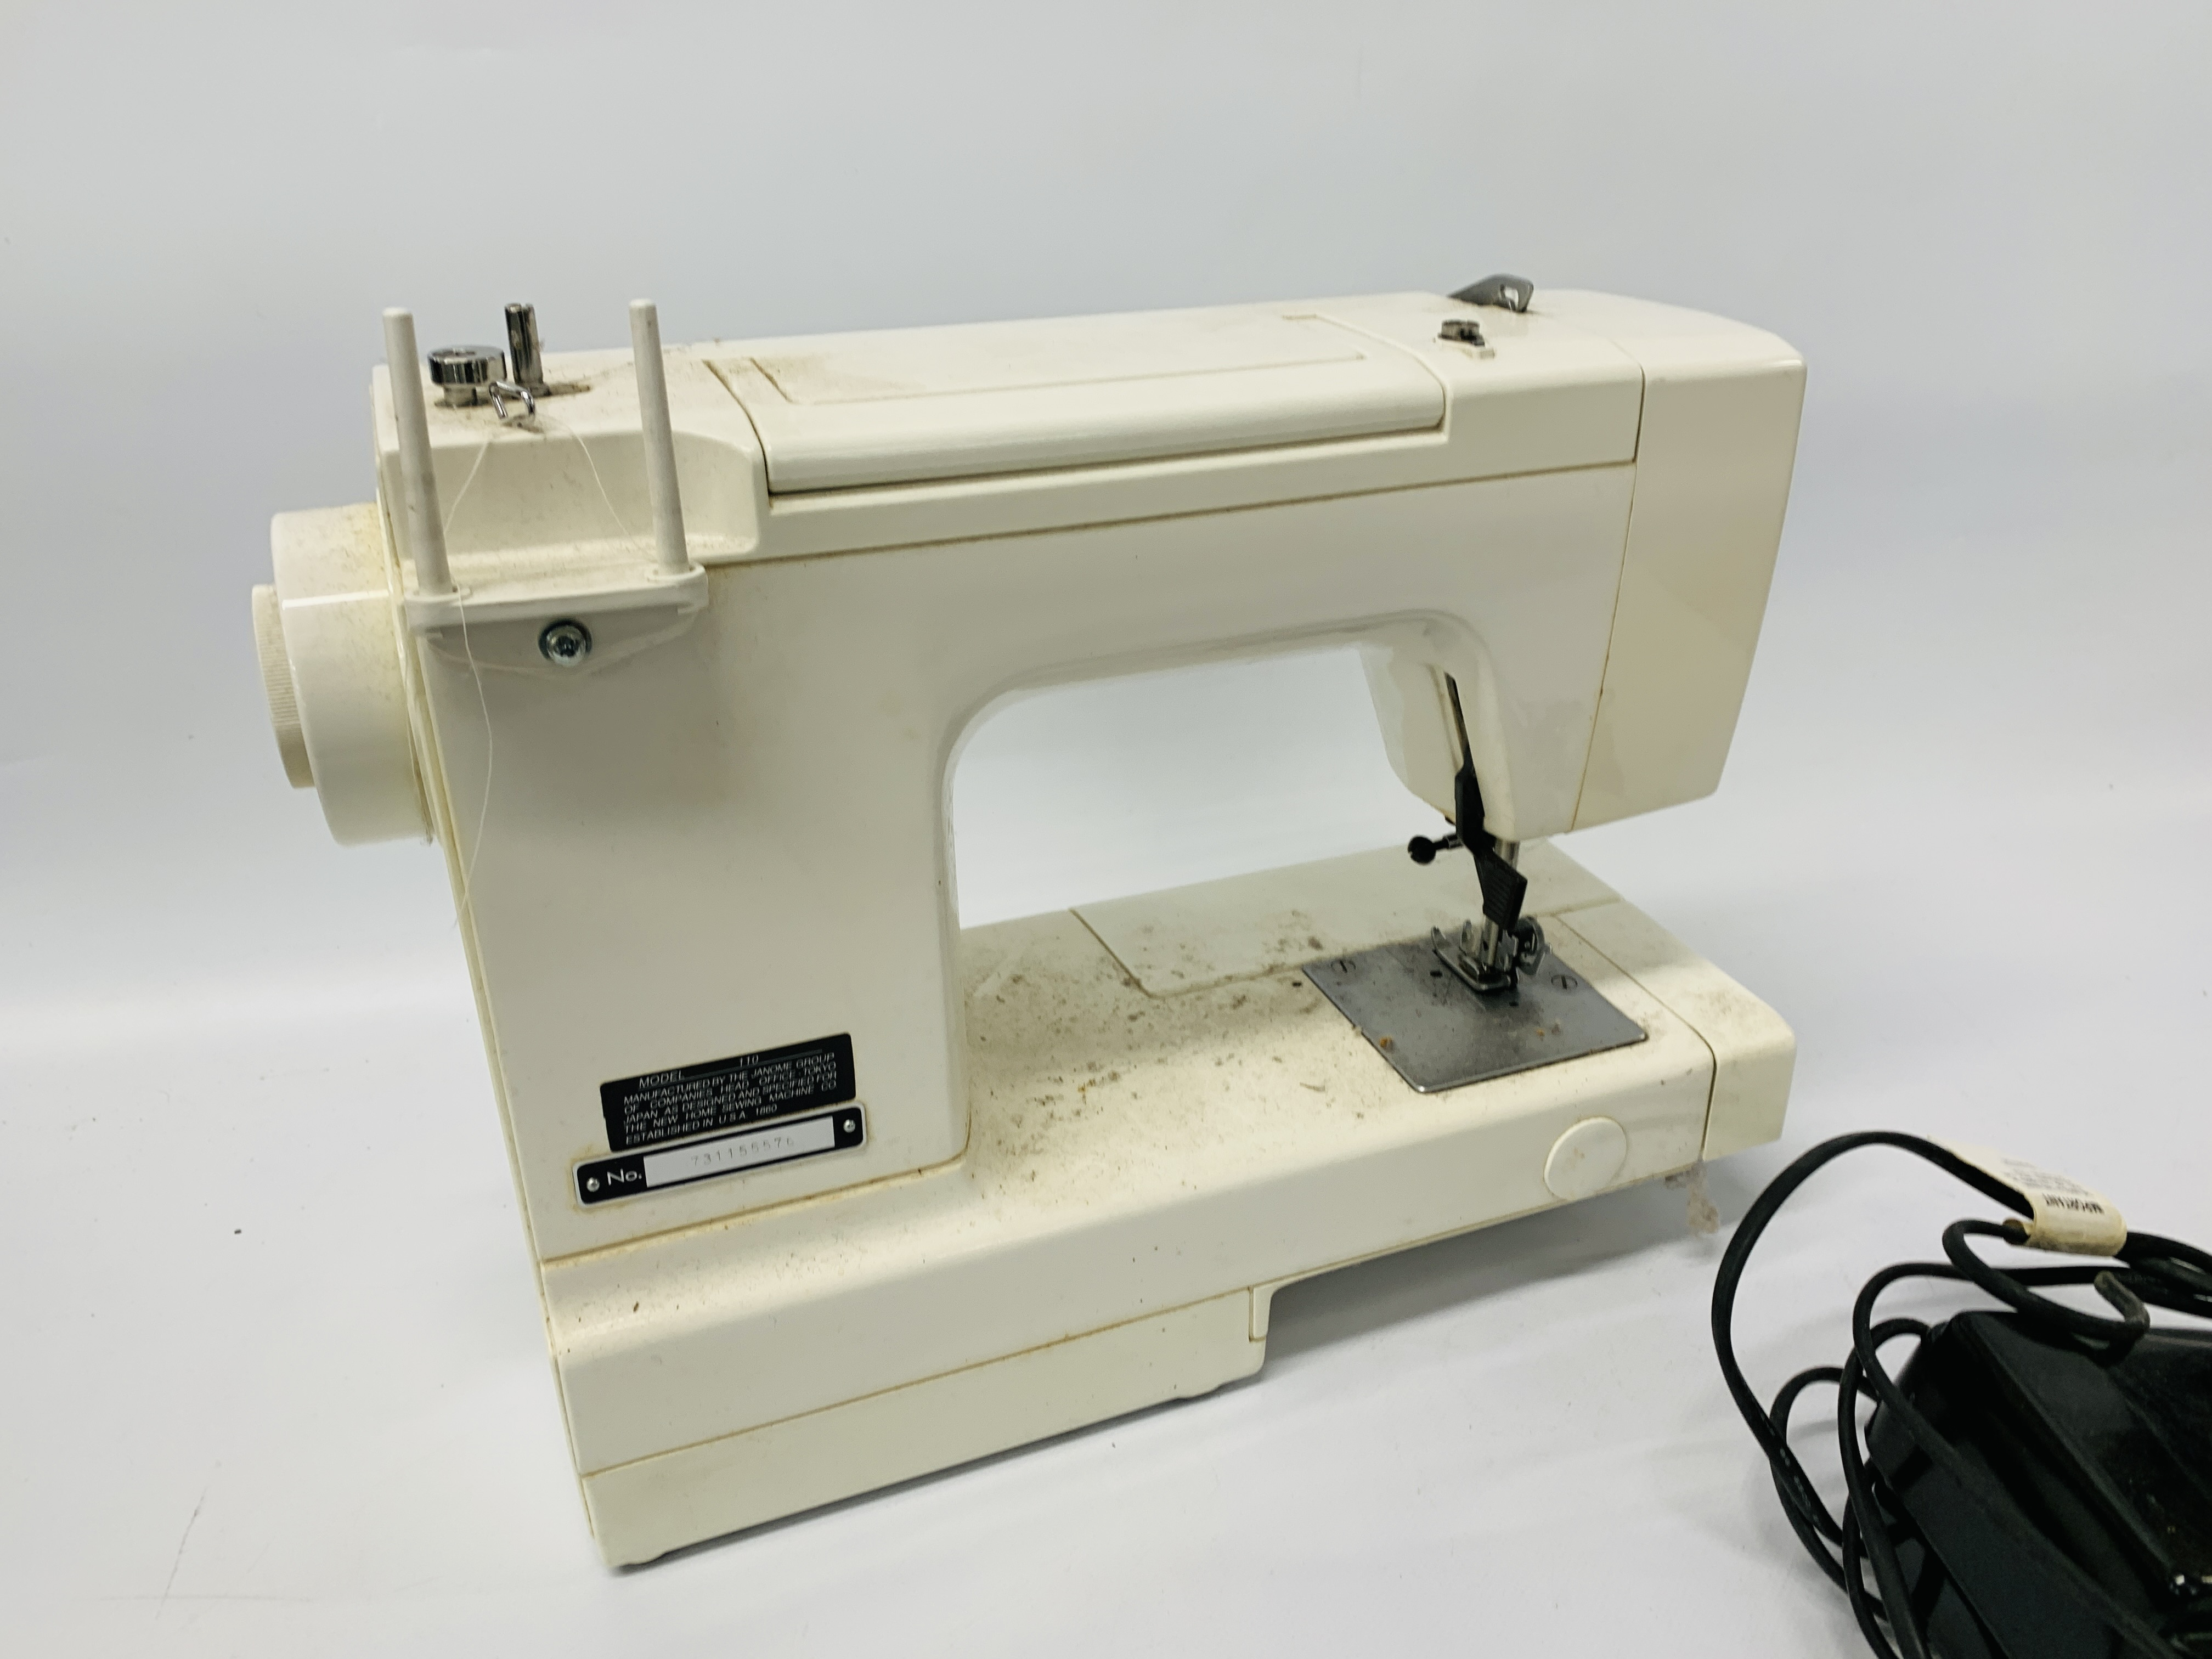 JANOME 110 SEWING MACHINE + VARIOUS KNITTING AND SEWING ACCESSORIES - SOLD AS SEEN - Image 5 of 12